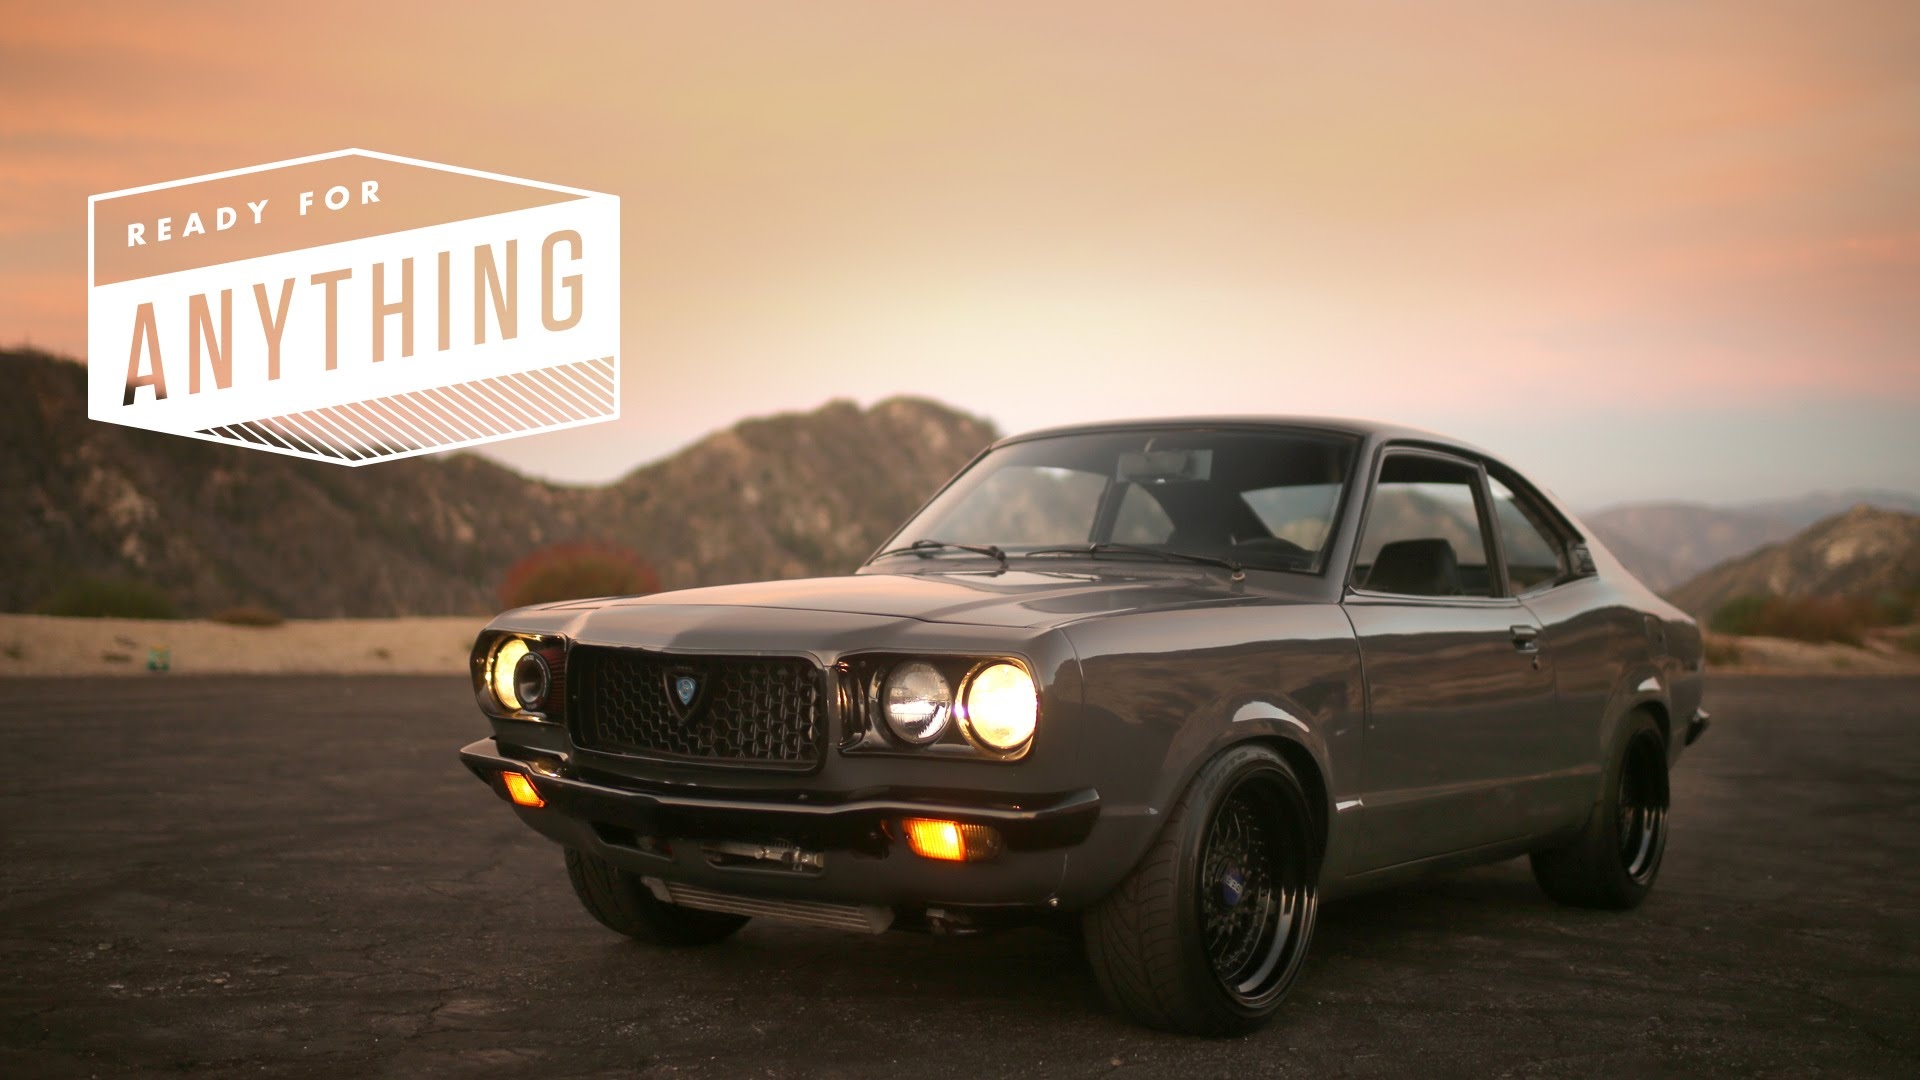 This Mazda RX-3 Is One Of THE BEST Looking Cars Of All Time